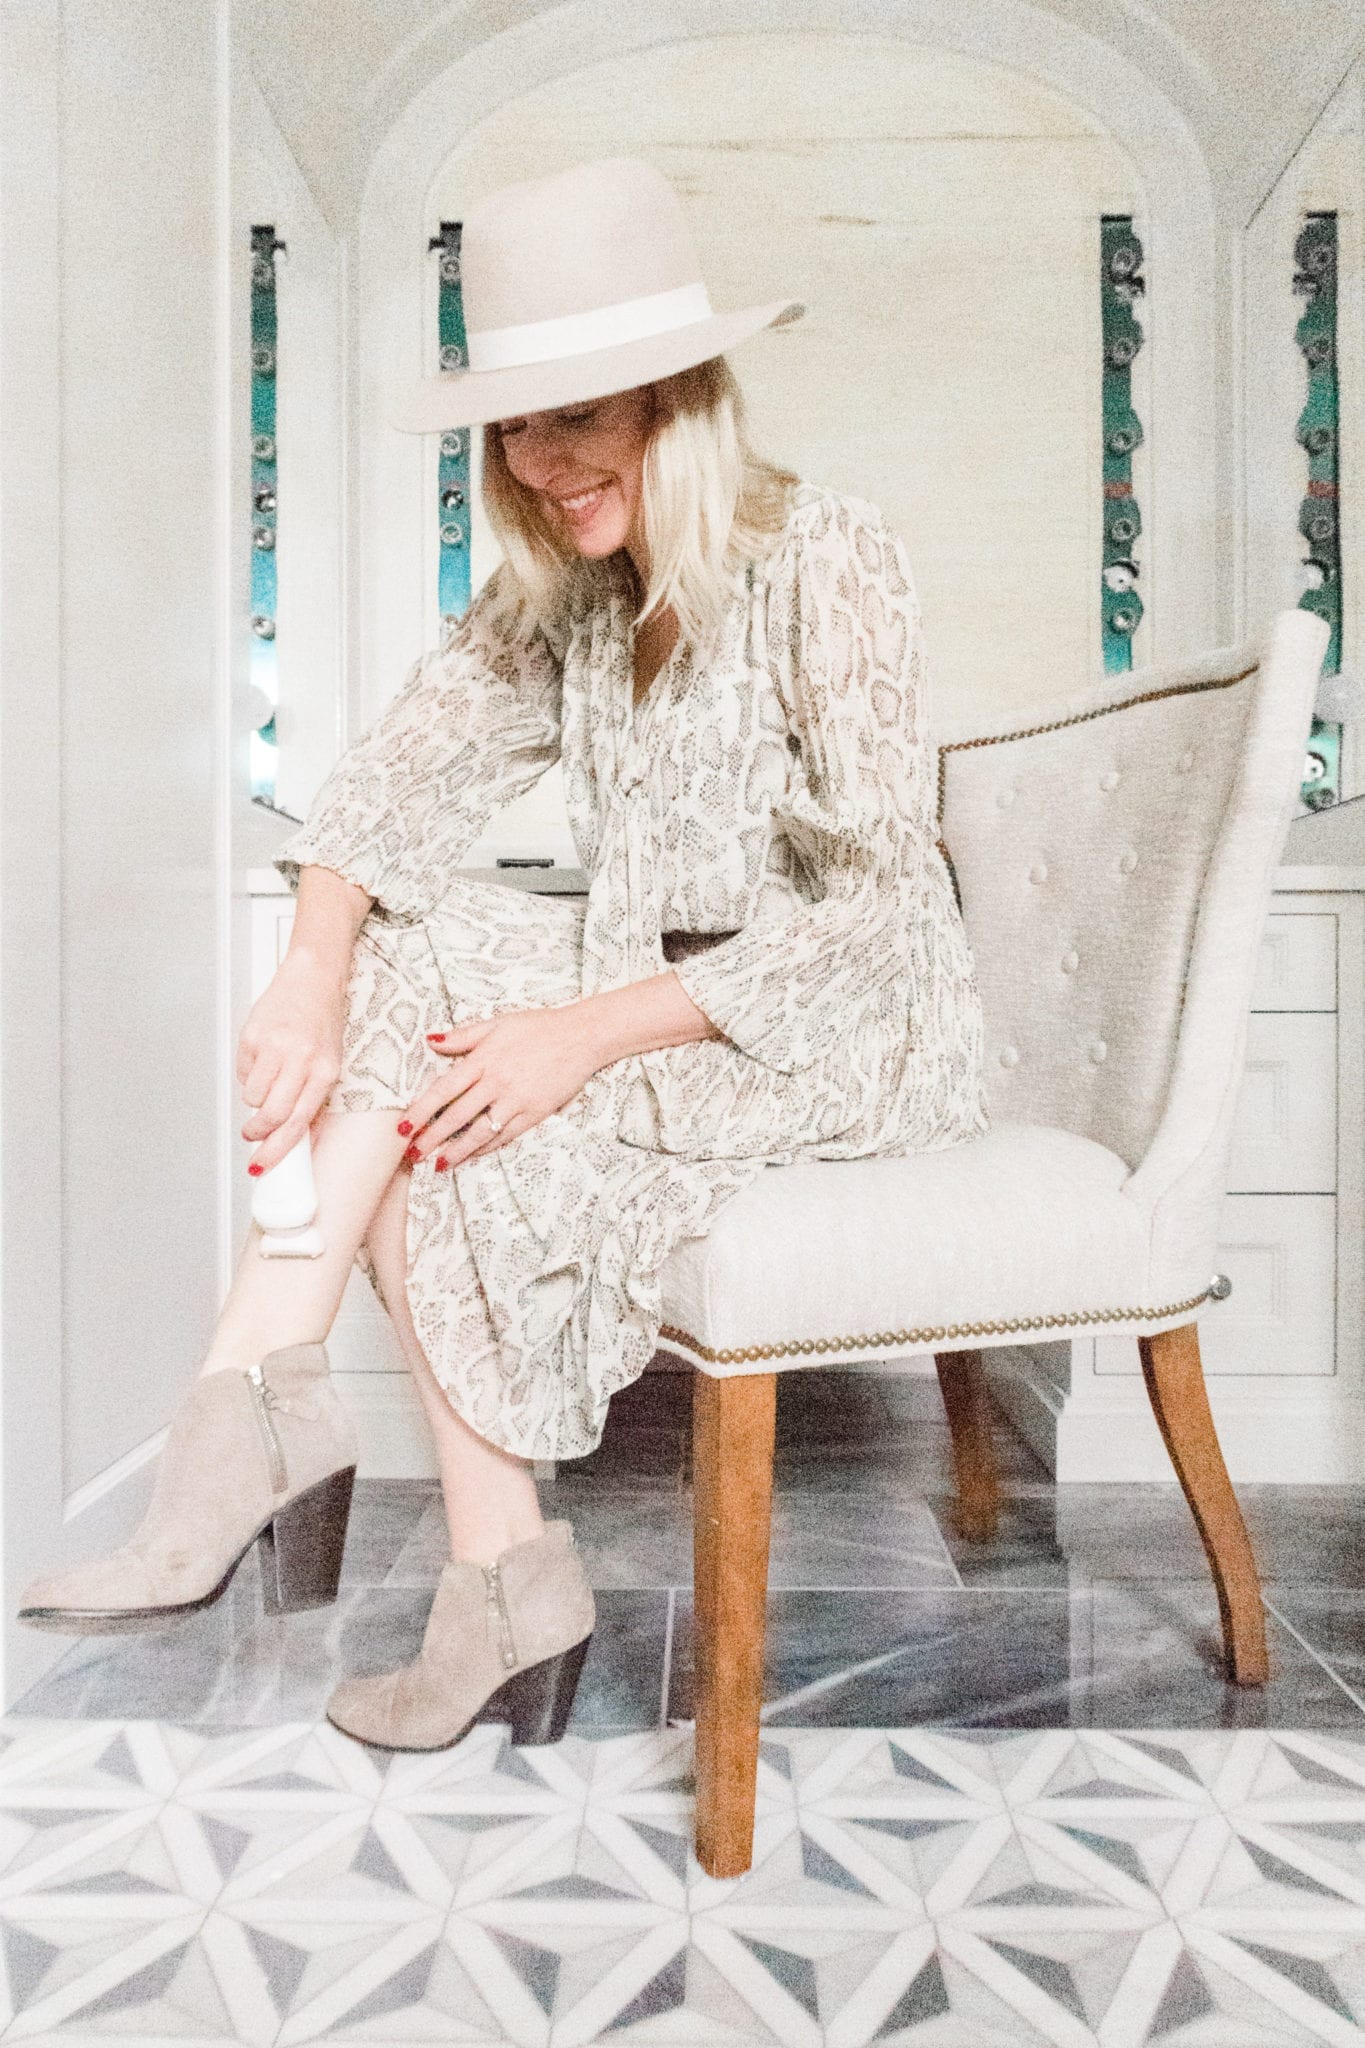 Anthropologie Snakeskin Dress with suede booties and fall hat. How to shave in the winter without getting dry skin. Philips SatinShave Razor.